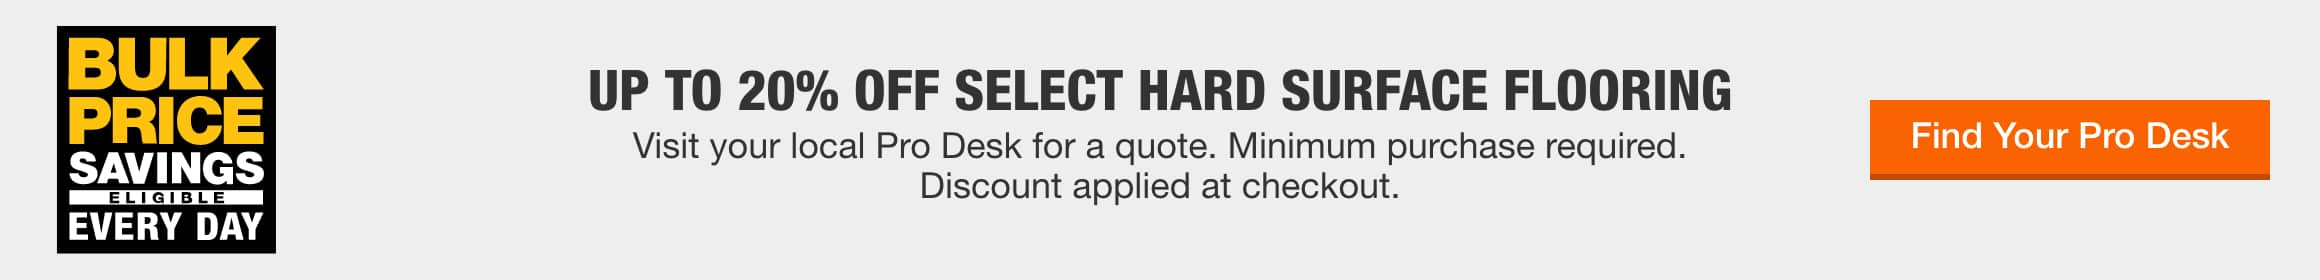 Up to 20% Off Select Hard Surface Flooring